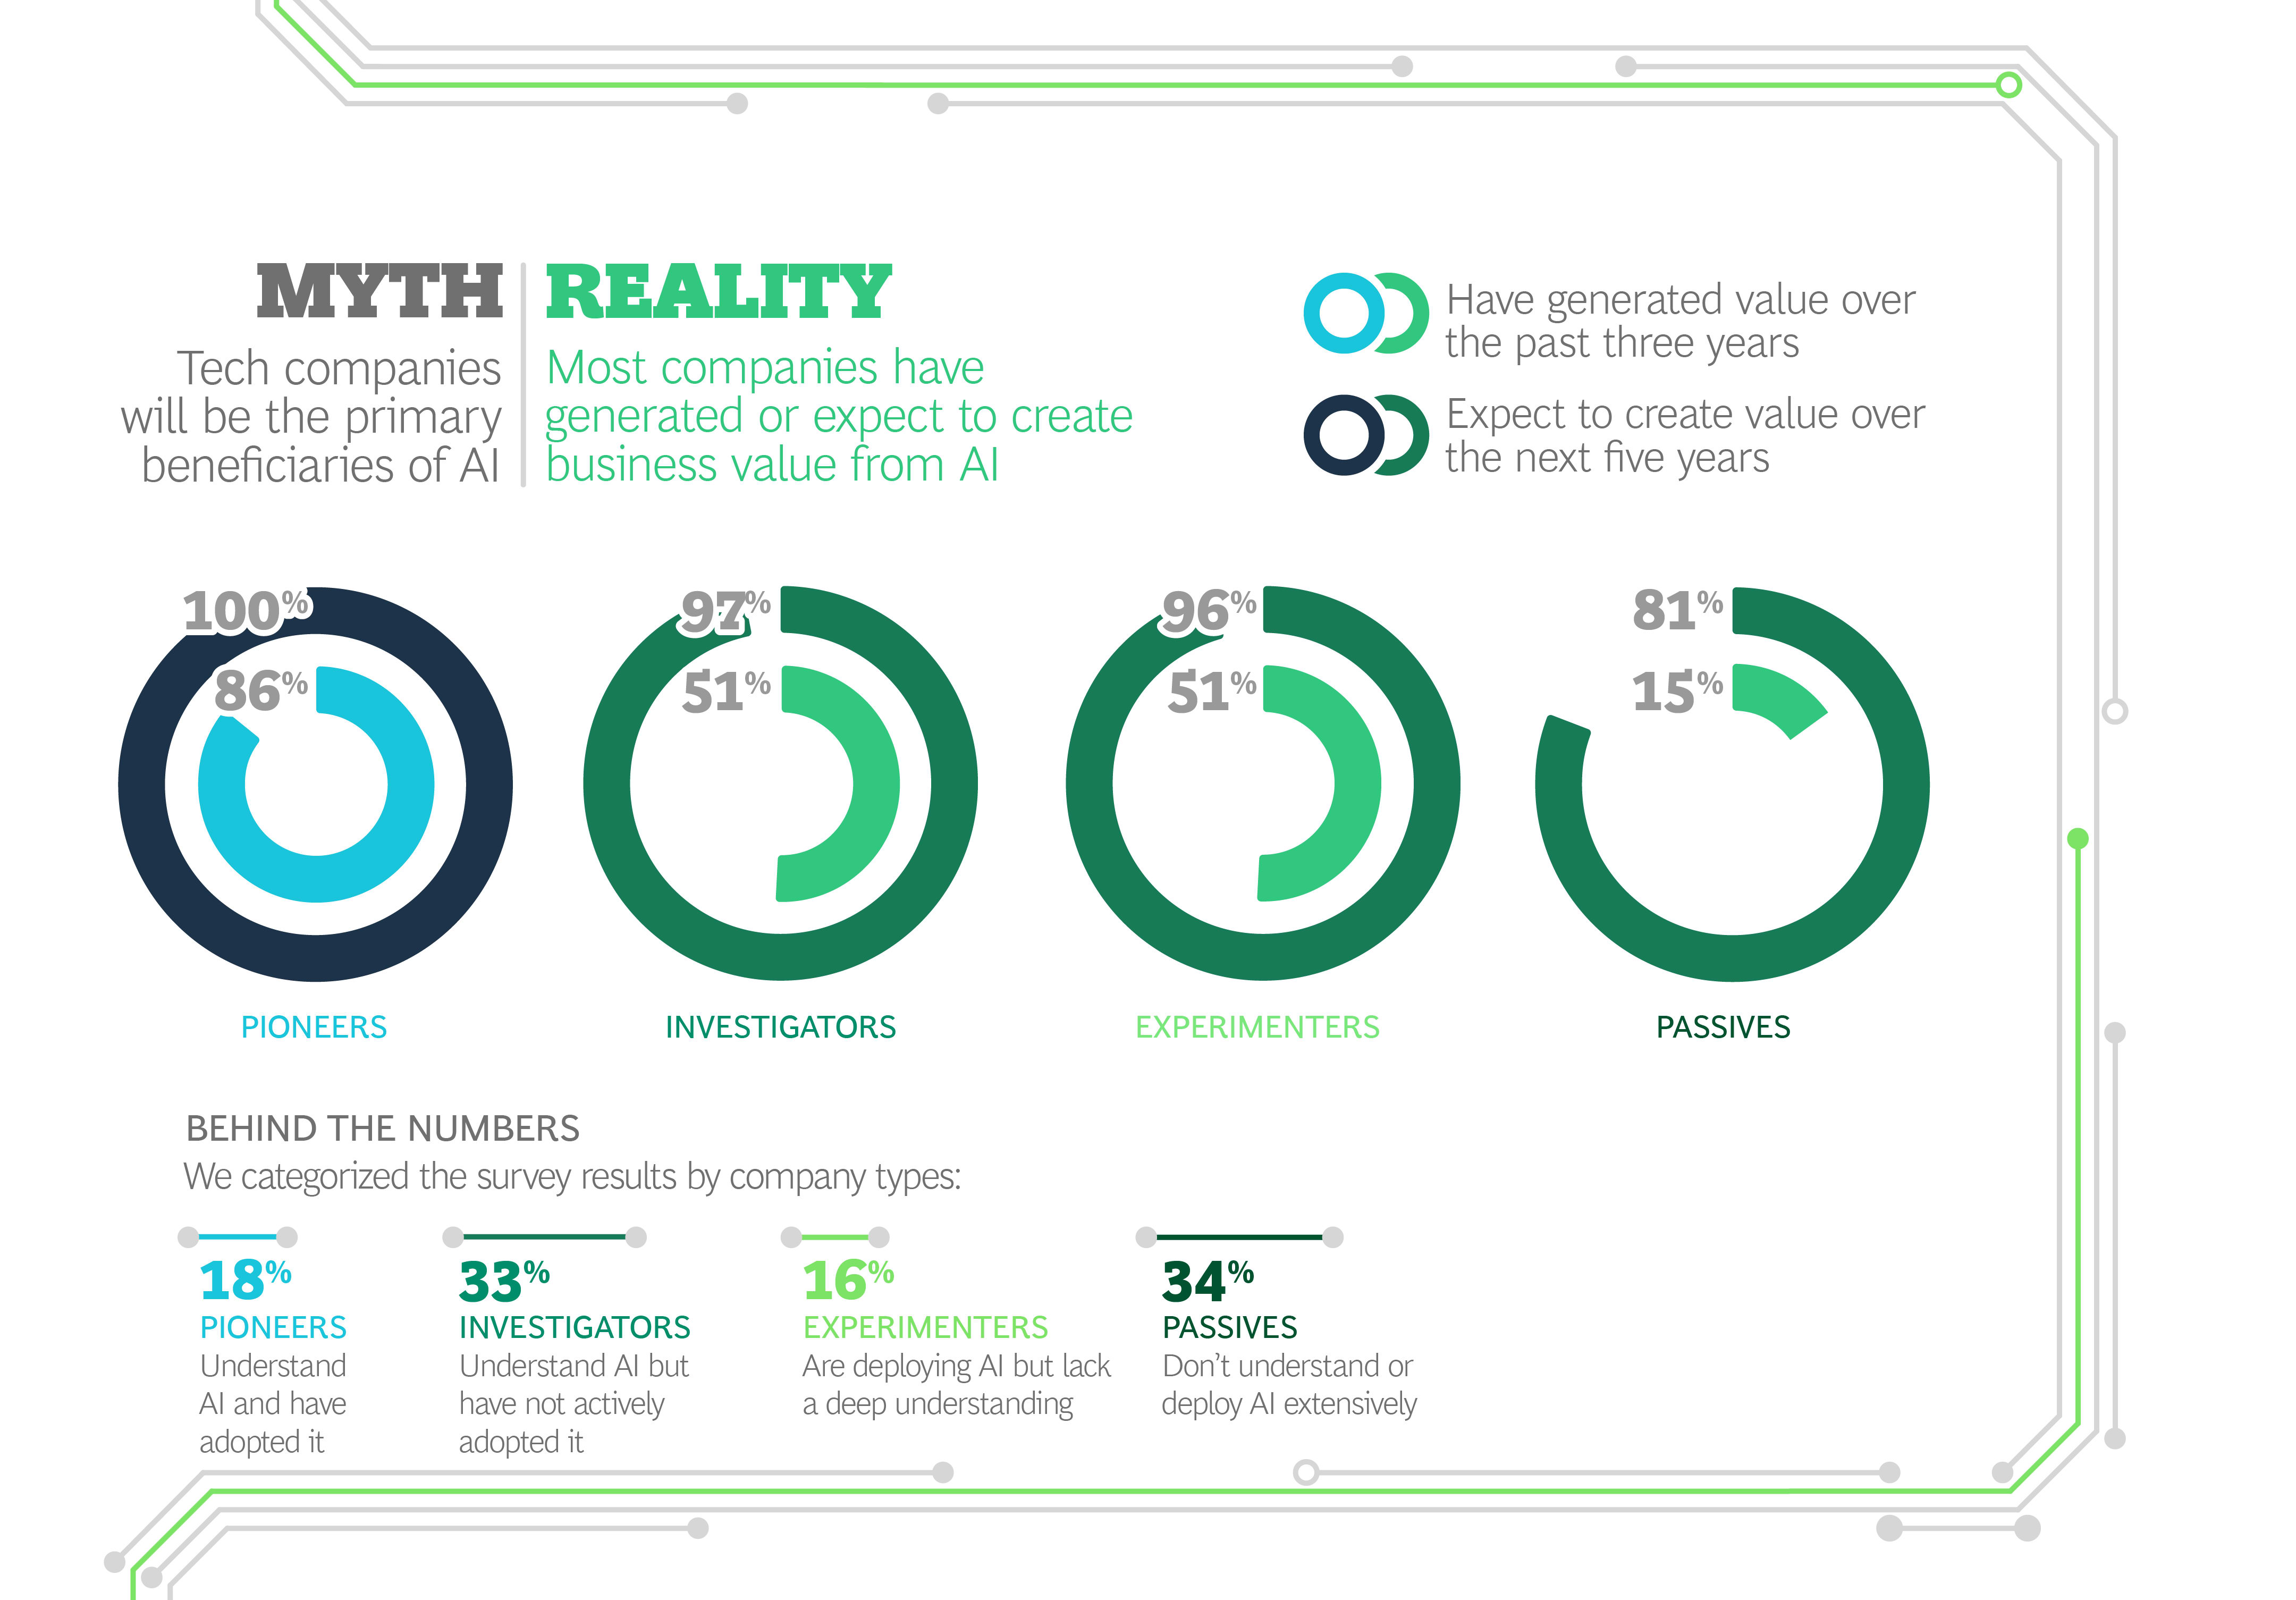 Myth vs. Reality in Artificial Intelligence - Infographic